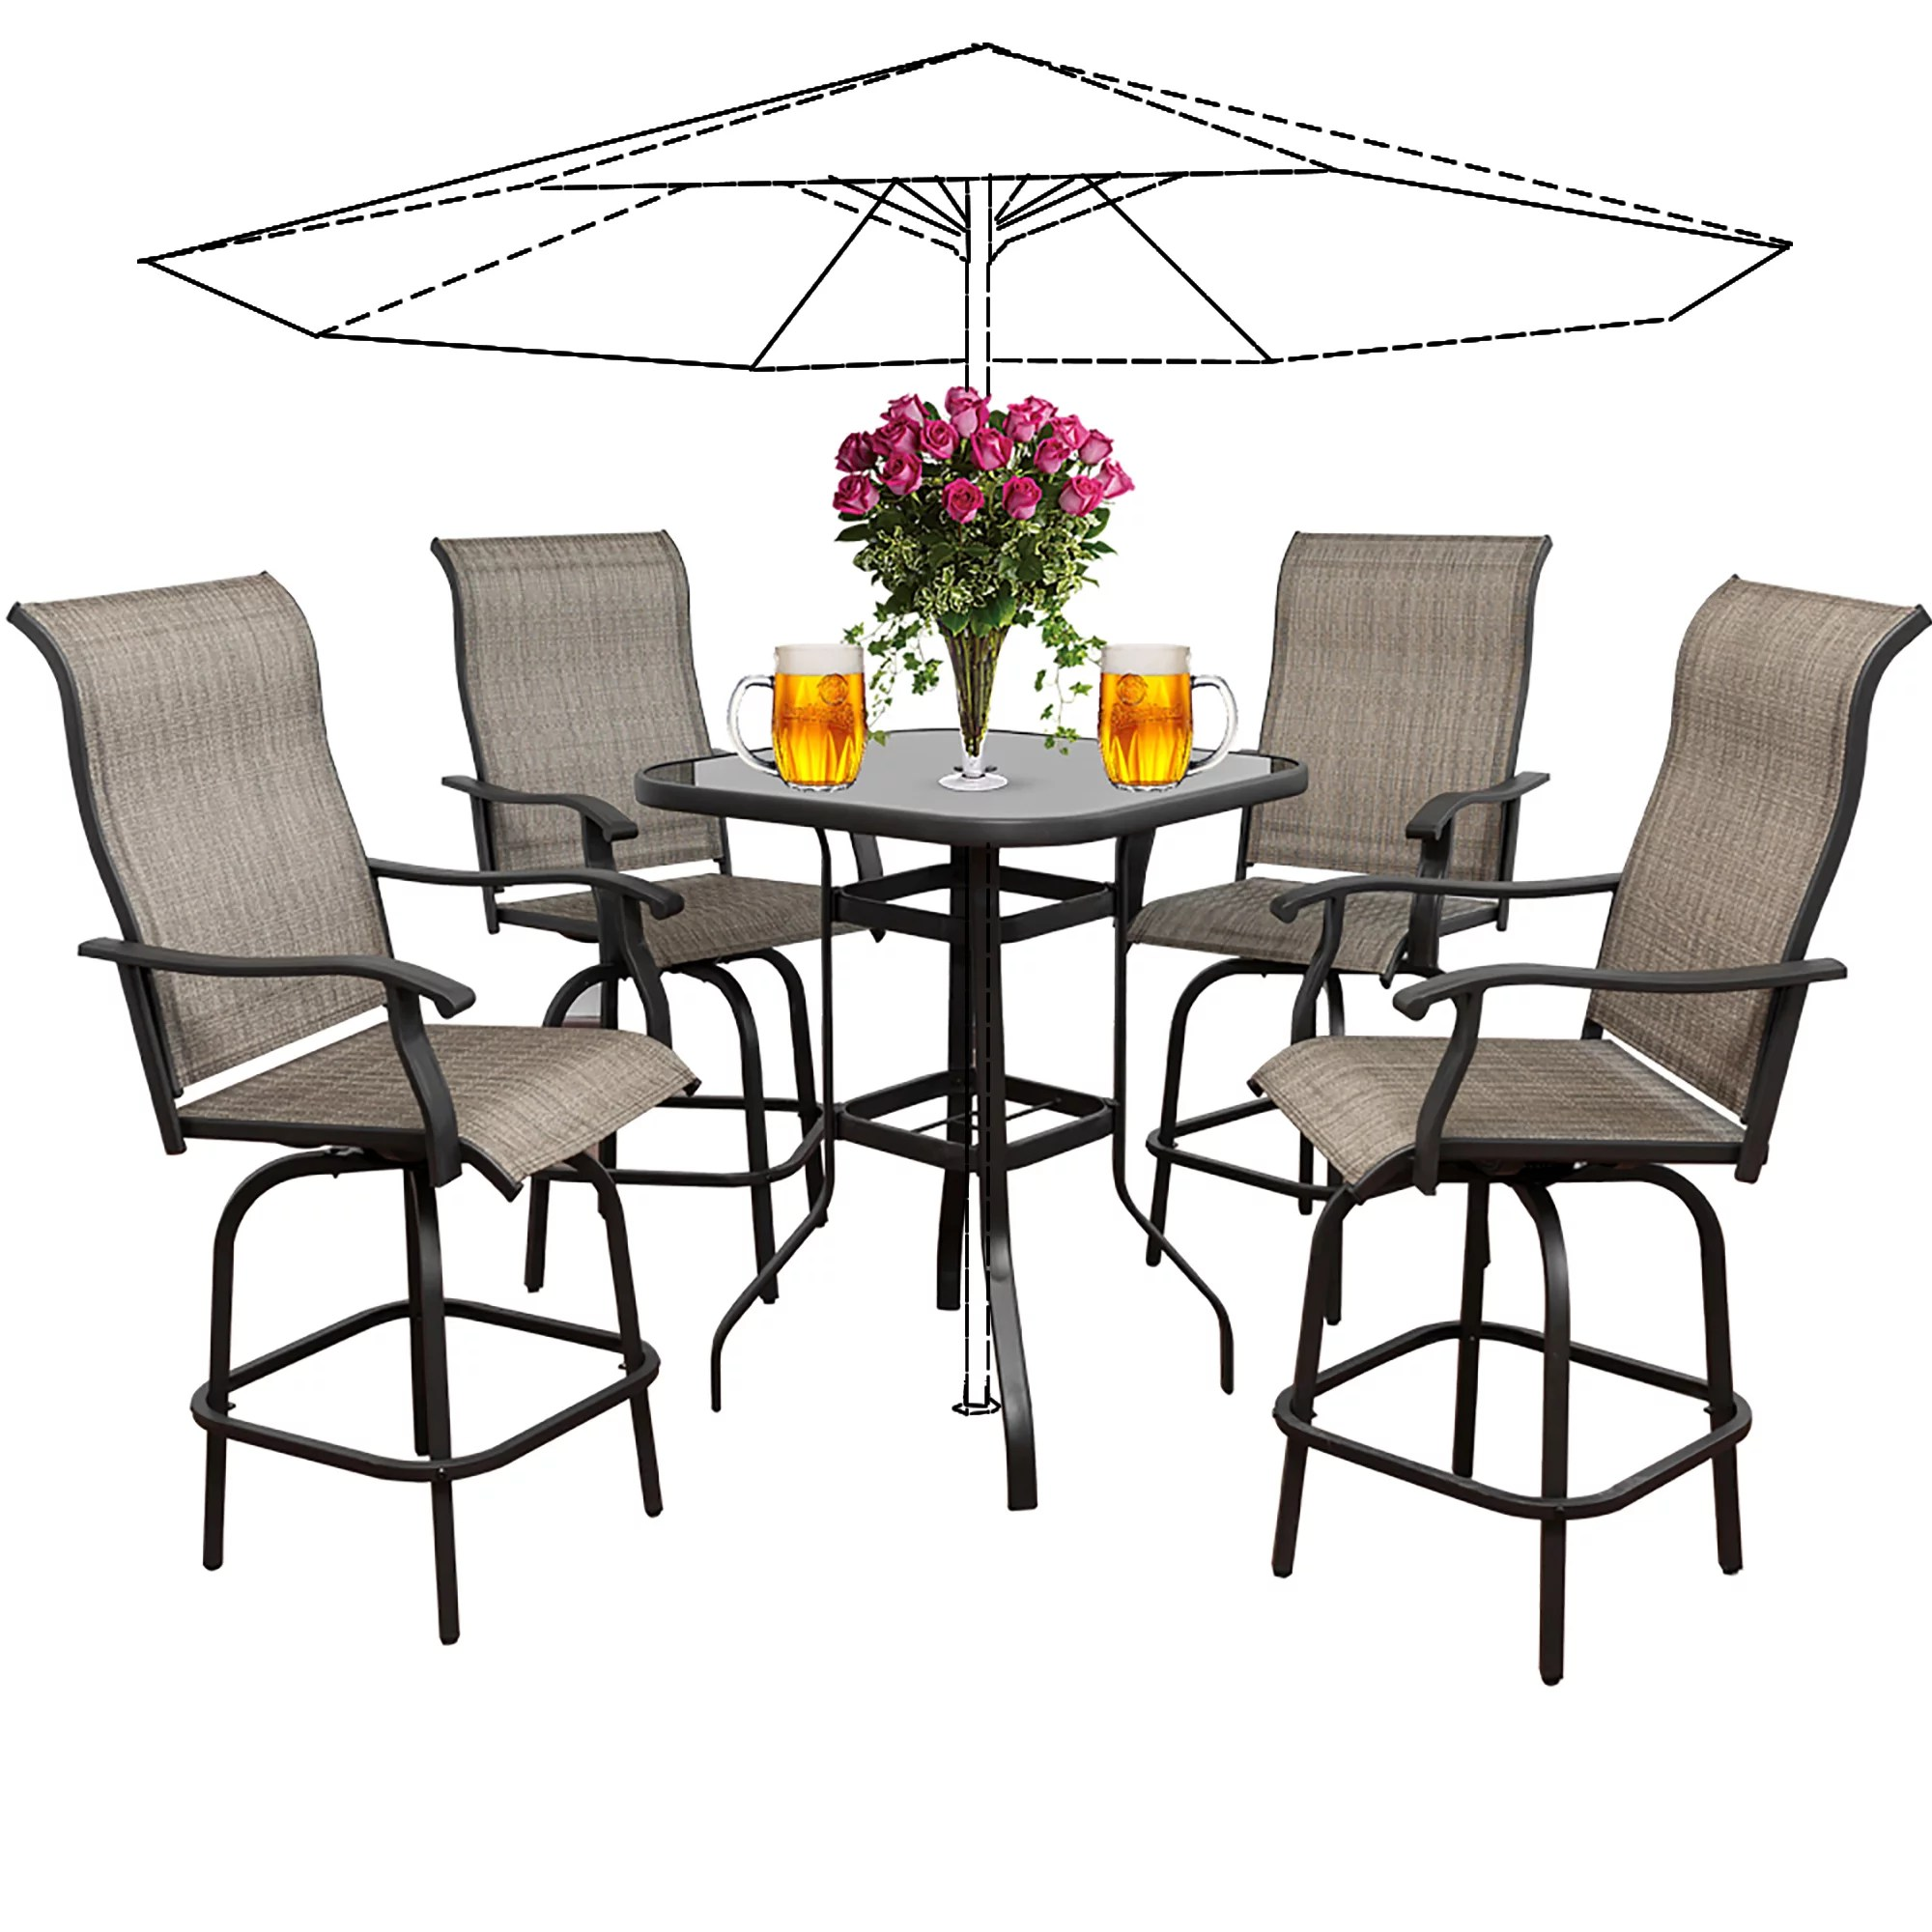 5pcs patio swivel bar set all weather outdoor furniture height bistro bar chair table set with 360 degree swivel suitable for yard backyard and